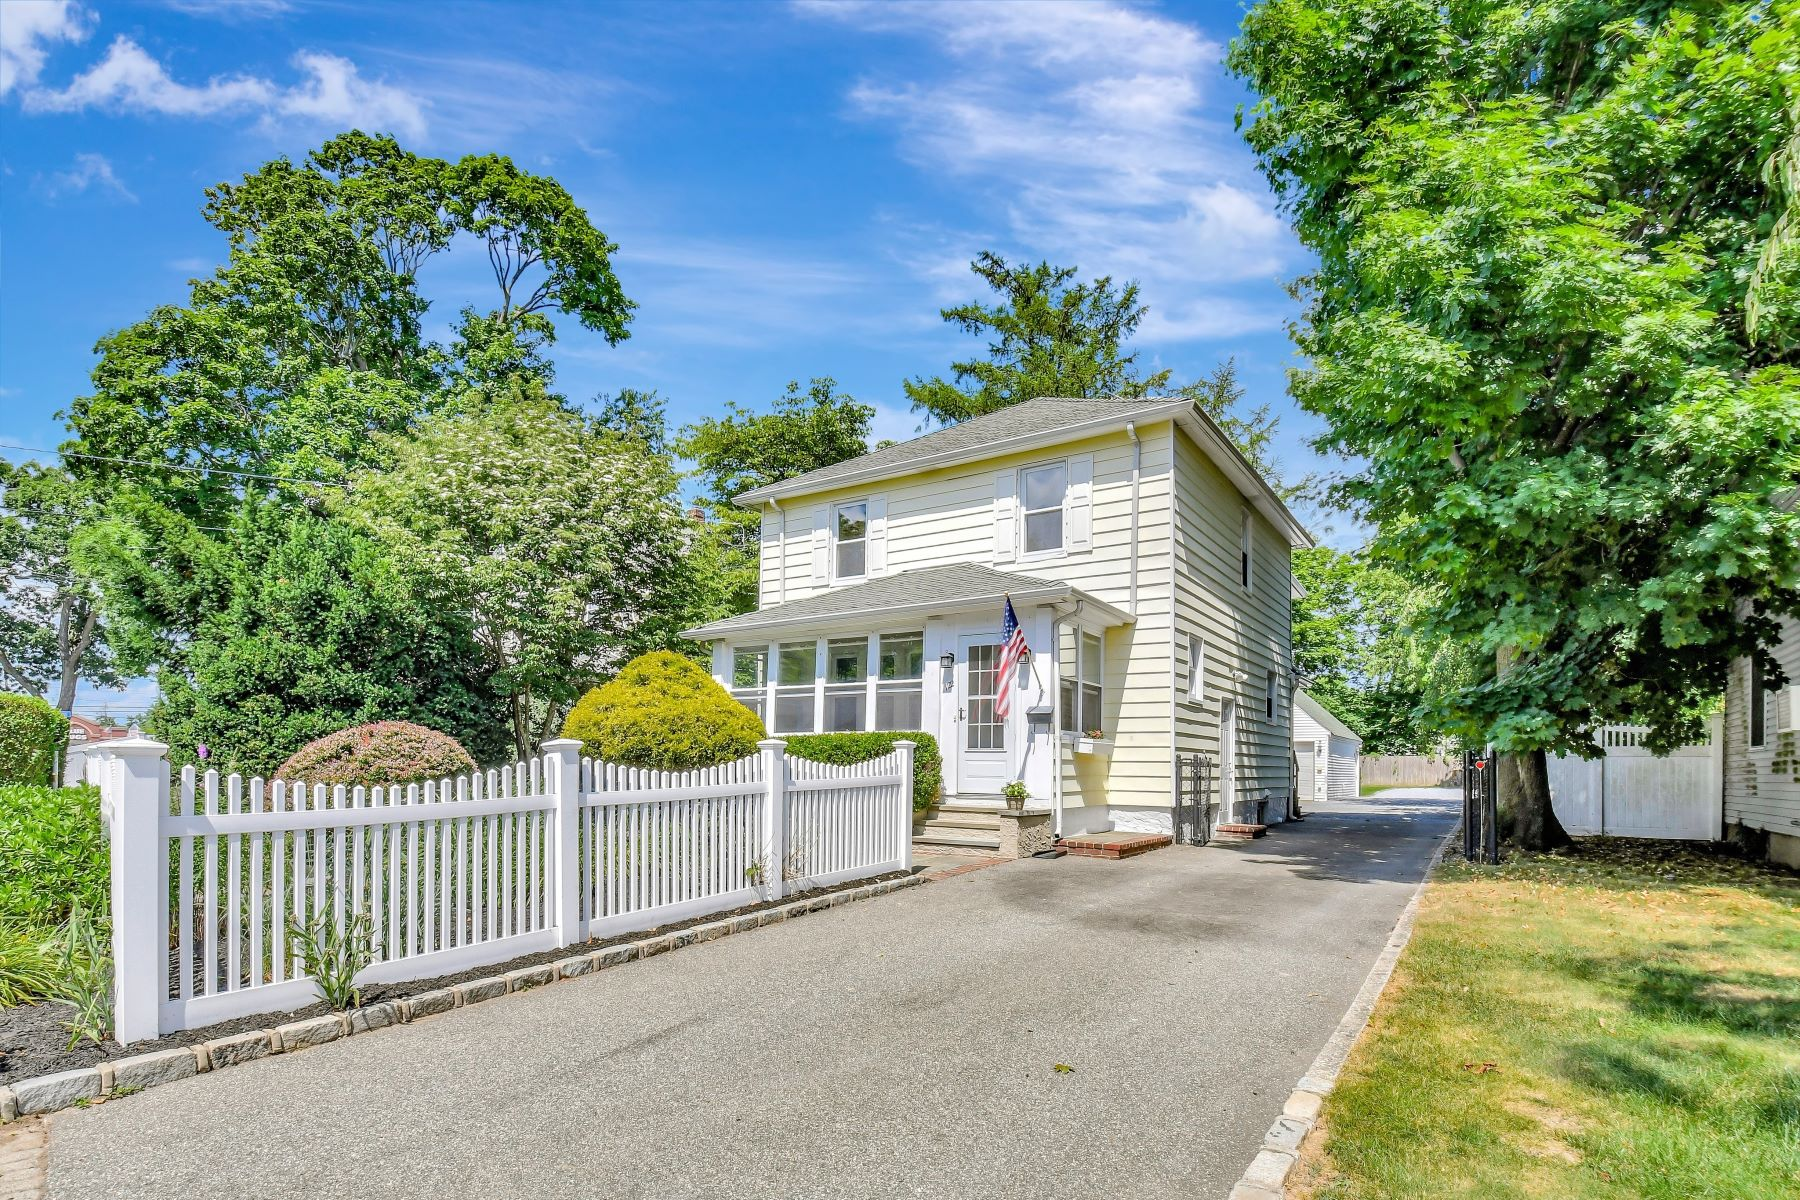 Single Family Homes for Sale at 122 Broadway, Greenlawn, Ny, 11740 122 122 Broadway Greenlawn, New York 11740 United States